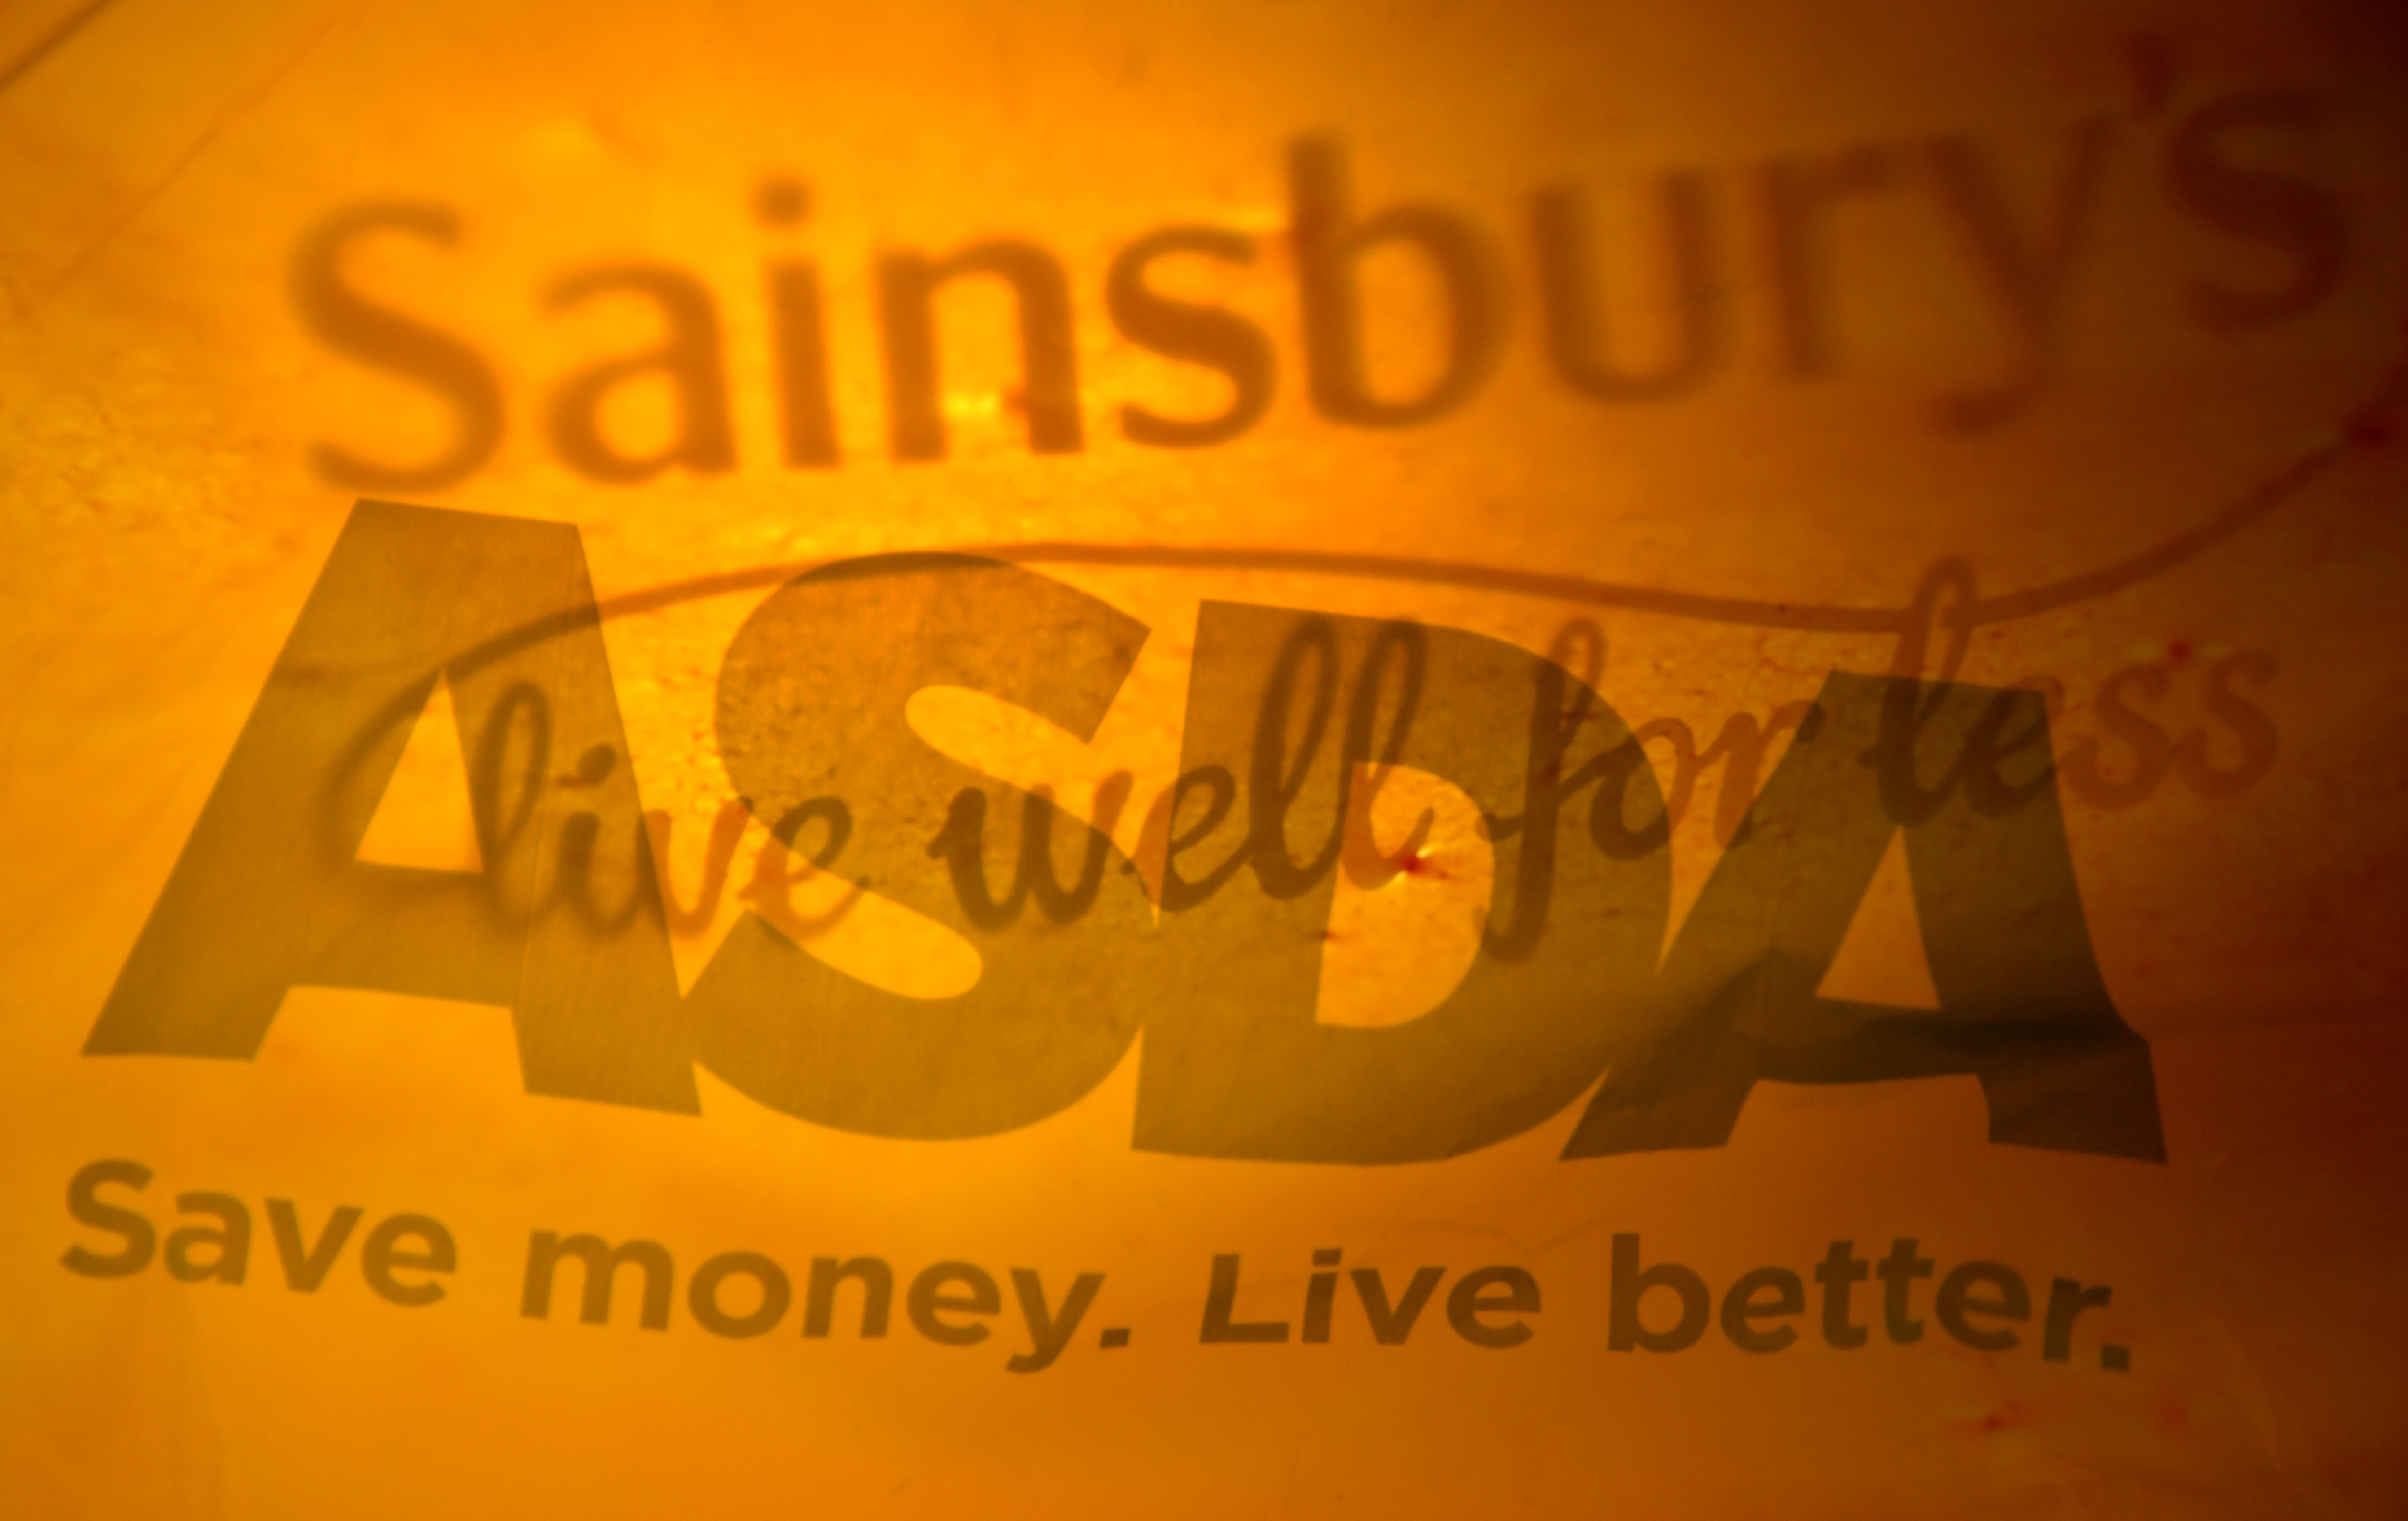 Sainsbury's confirms merge plans with Asda to create supermarket giant